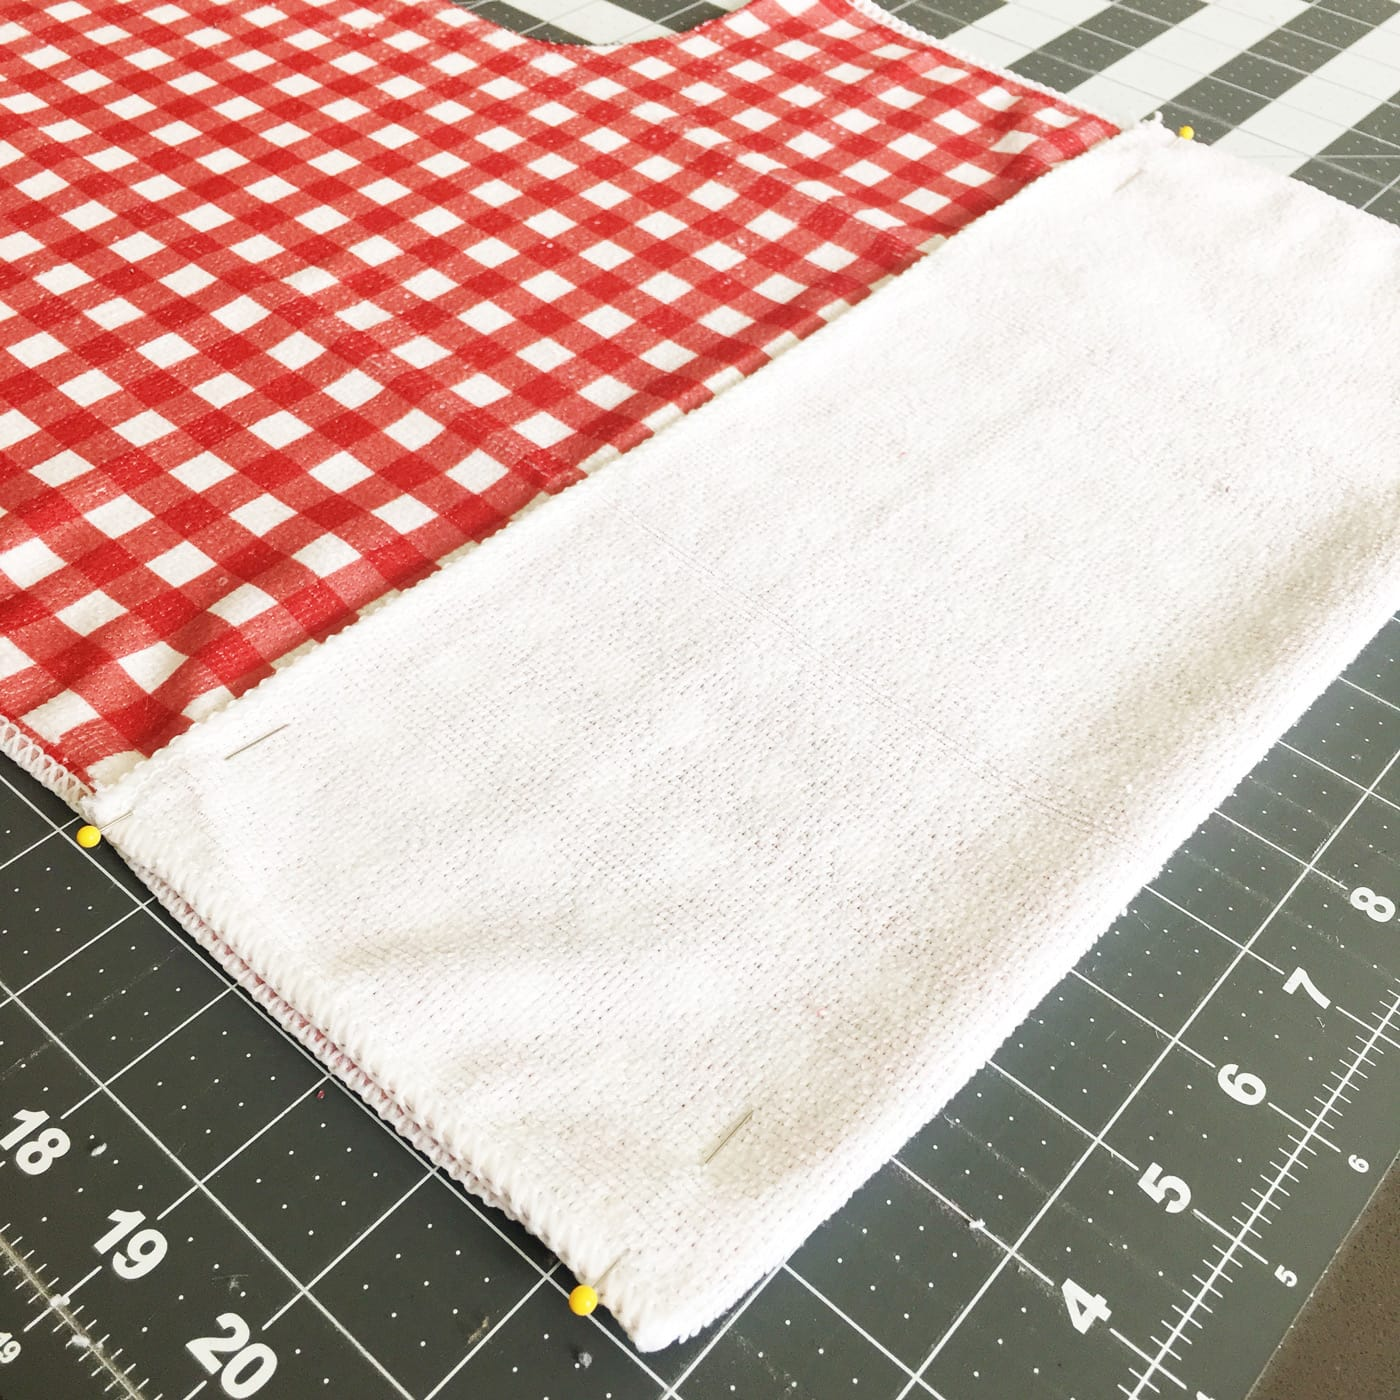 how to make a pocket at the bottom of the apron